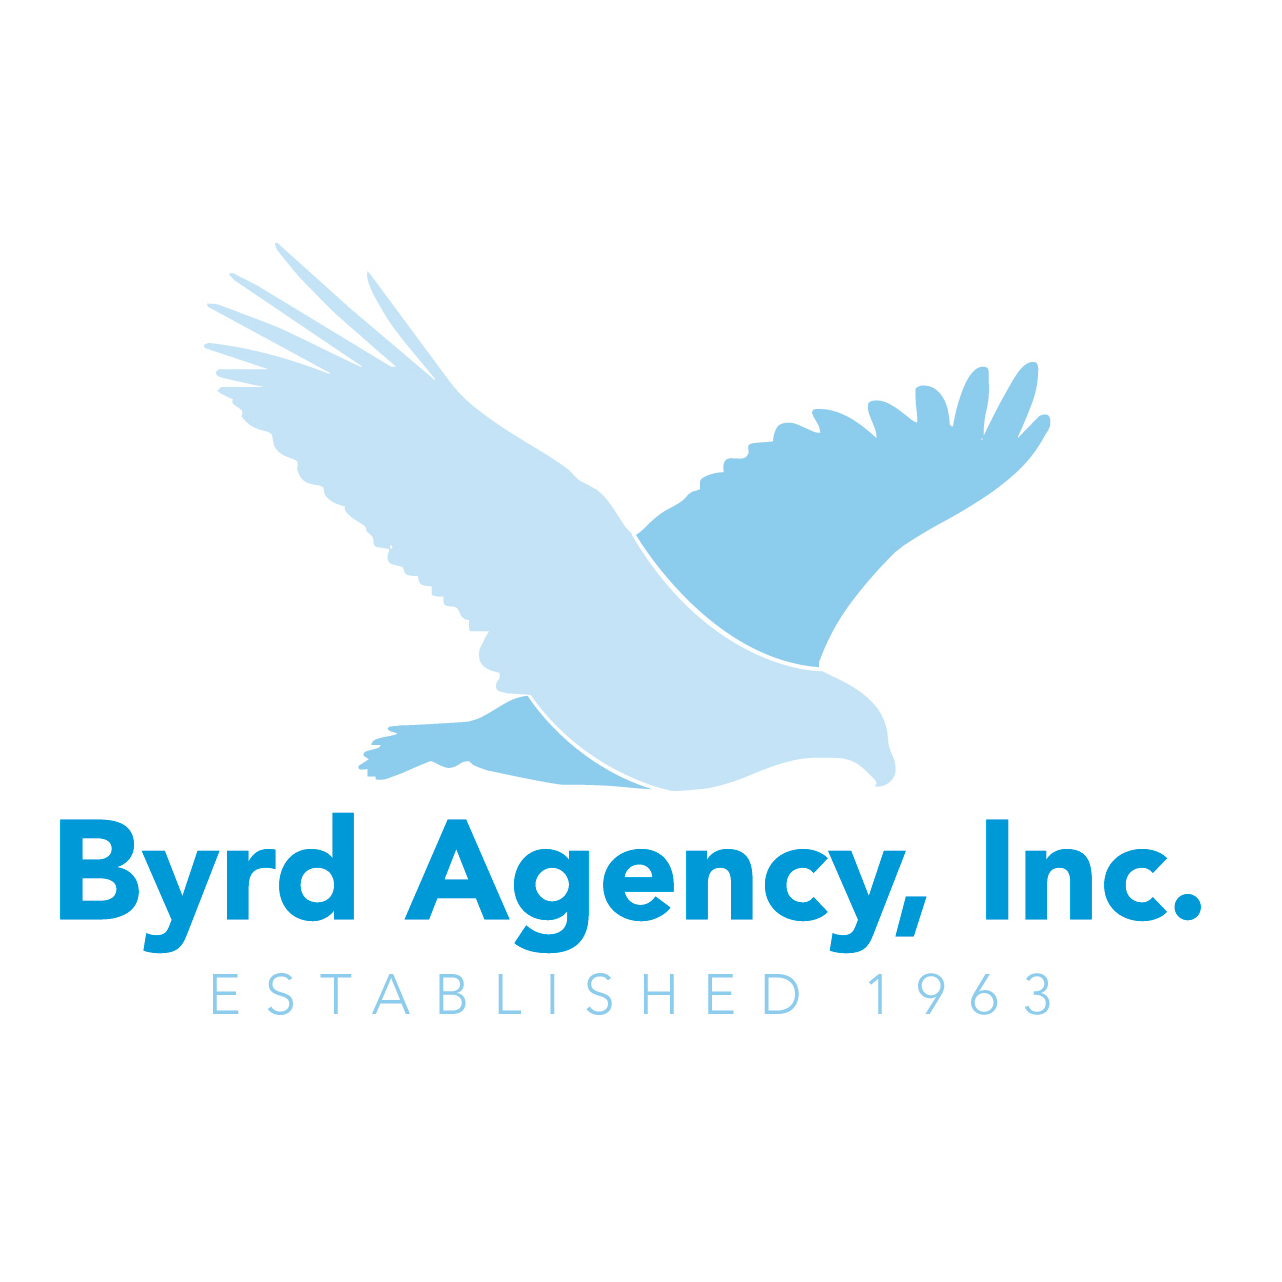 Byrd Agency Inc - Nationwide Insurance